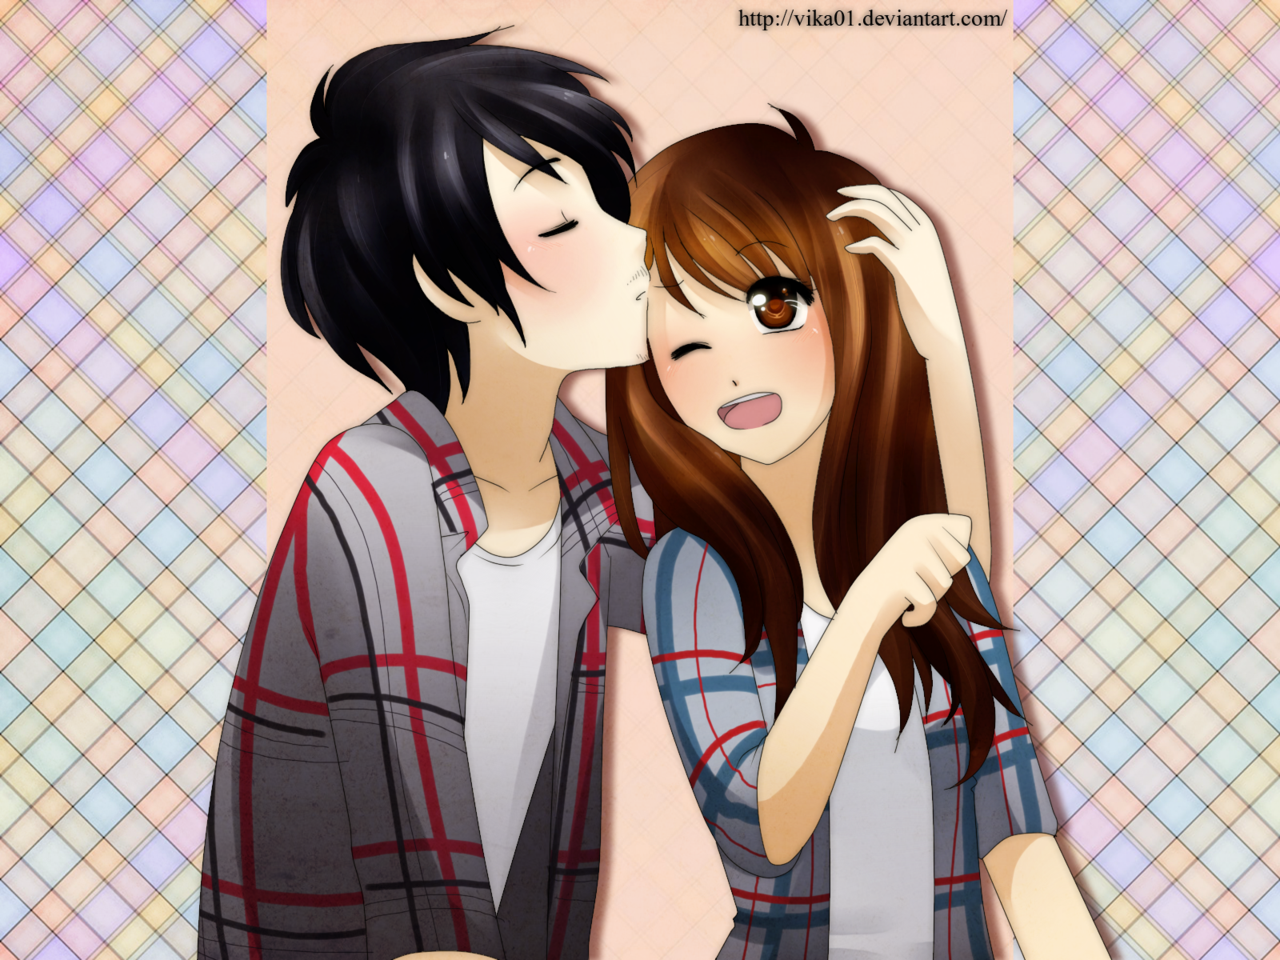 Sweet Couple Anime Wallpaper Wallpapersafari